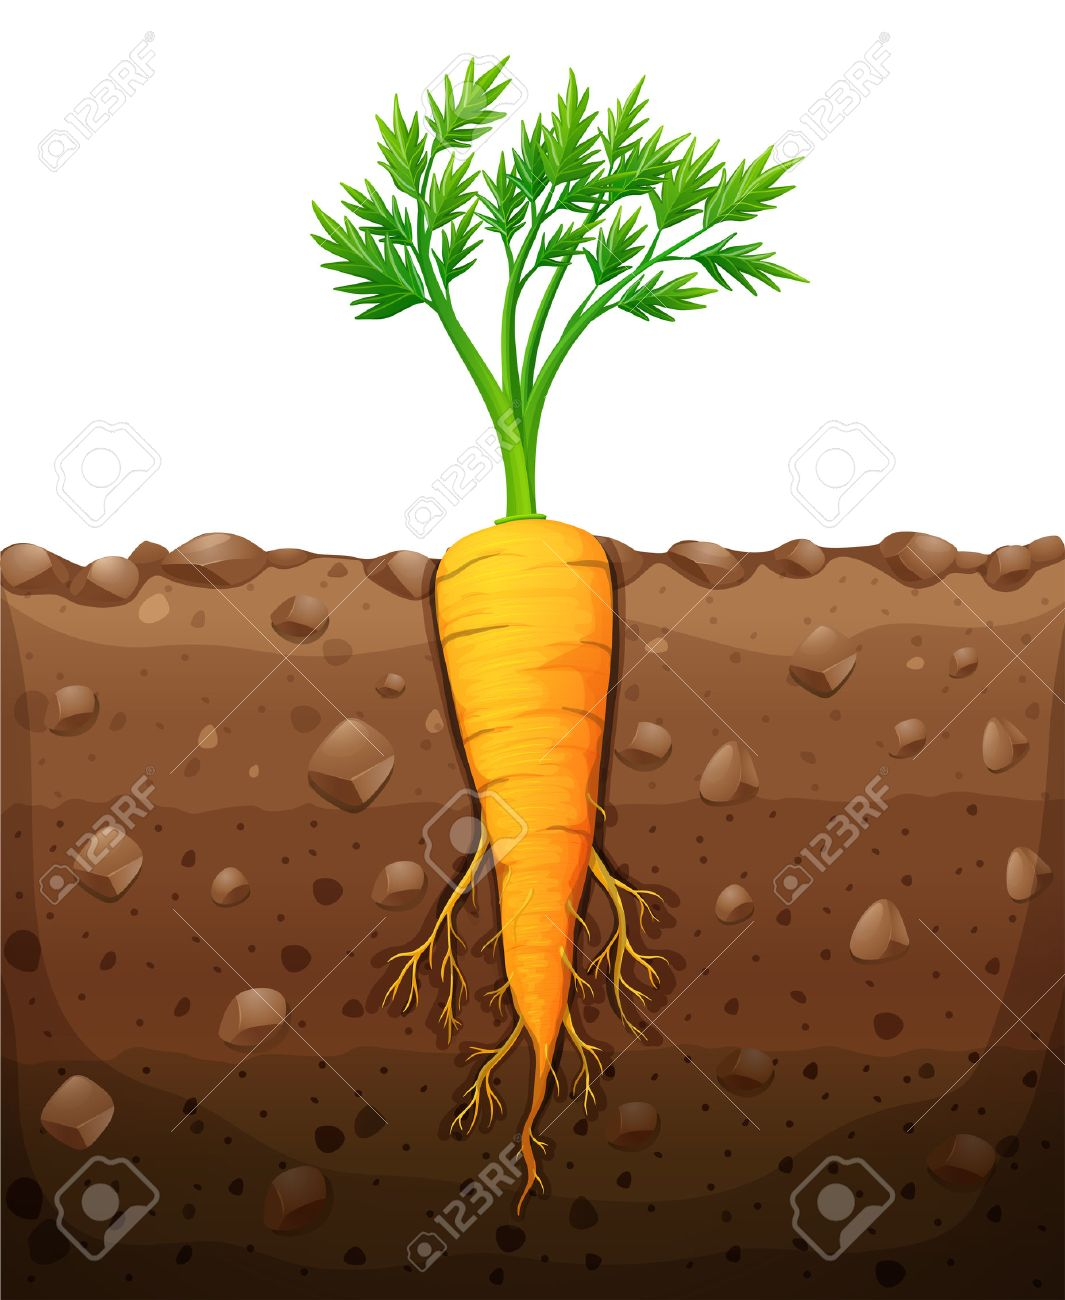 Carrot with root underground illustration.